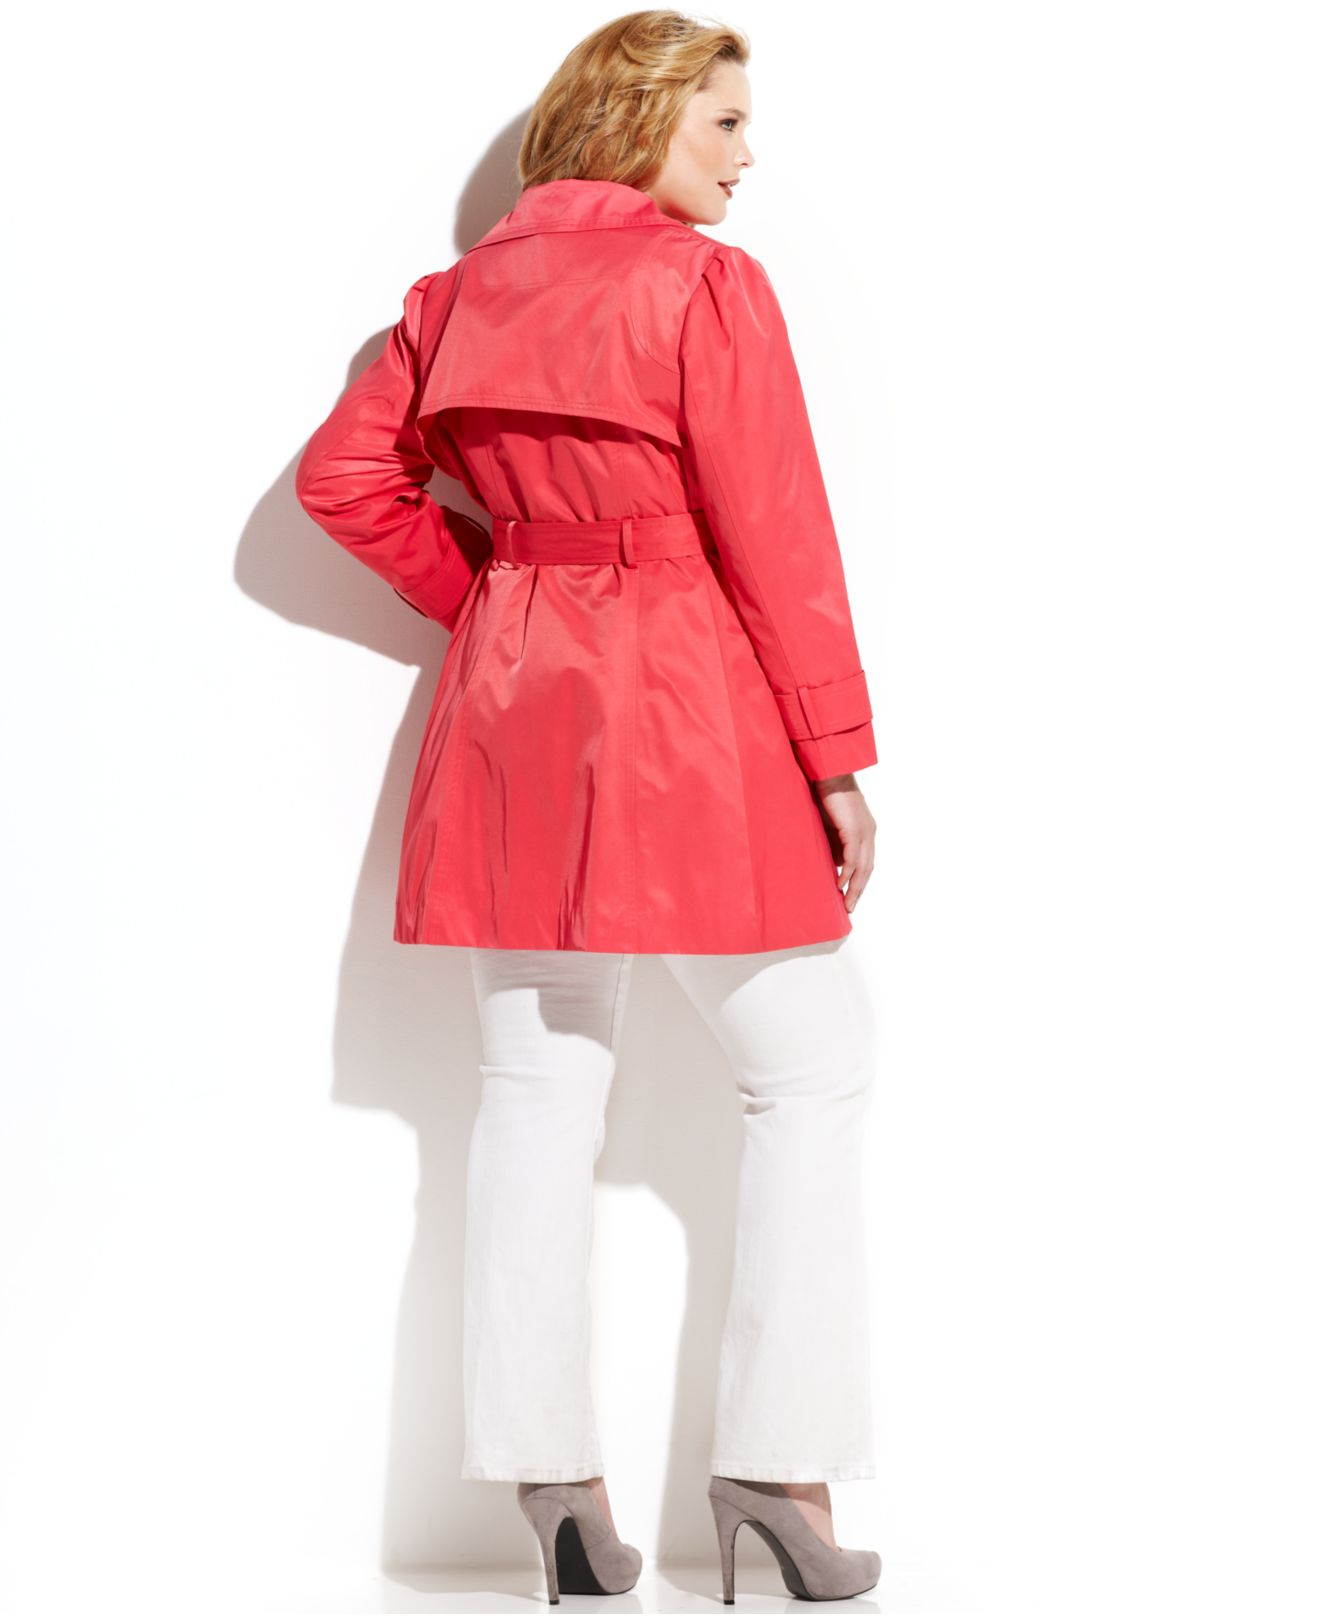 03867e8cf47 Lyst - Jessica Simpson Plus Size Ruffle-Trim Belted Trench Coat in Red